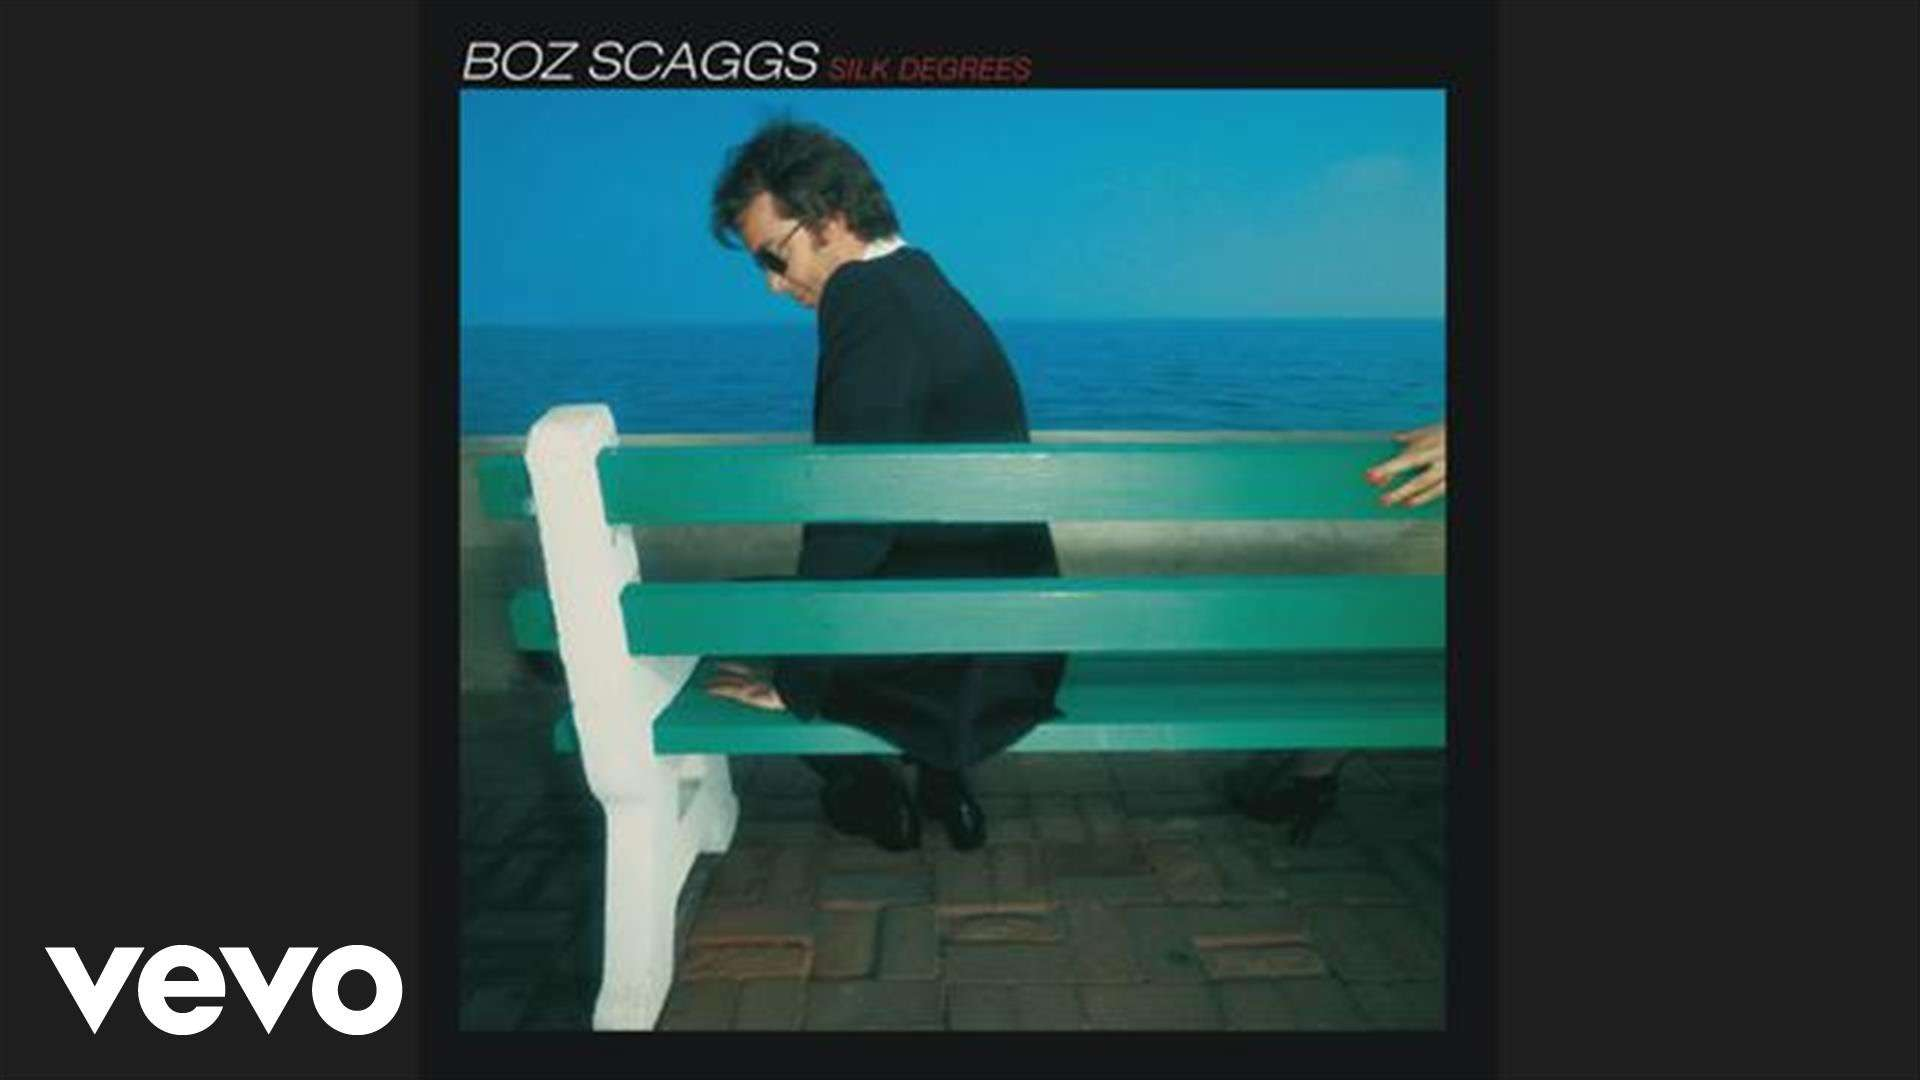 Boz Scaggs - Lowdown - YouTube